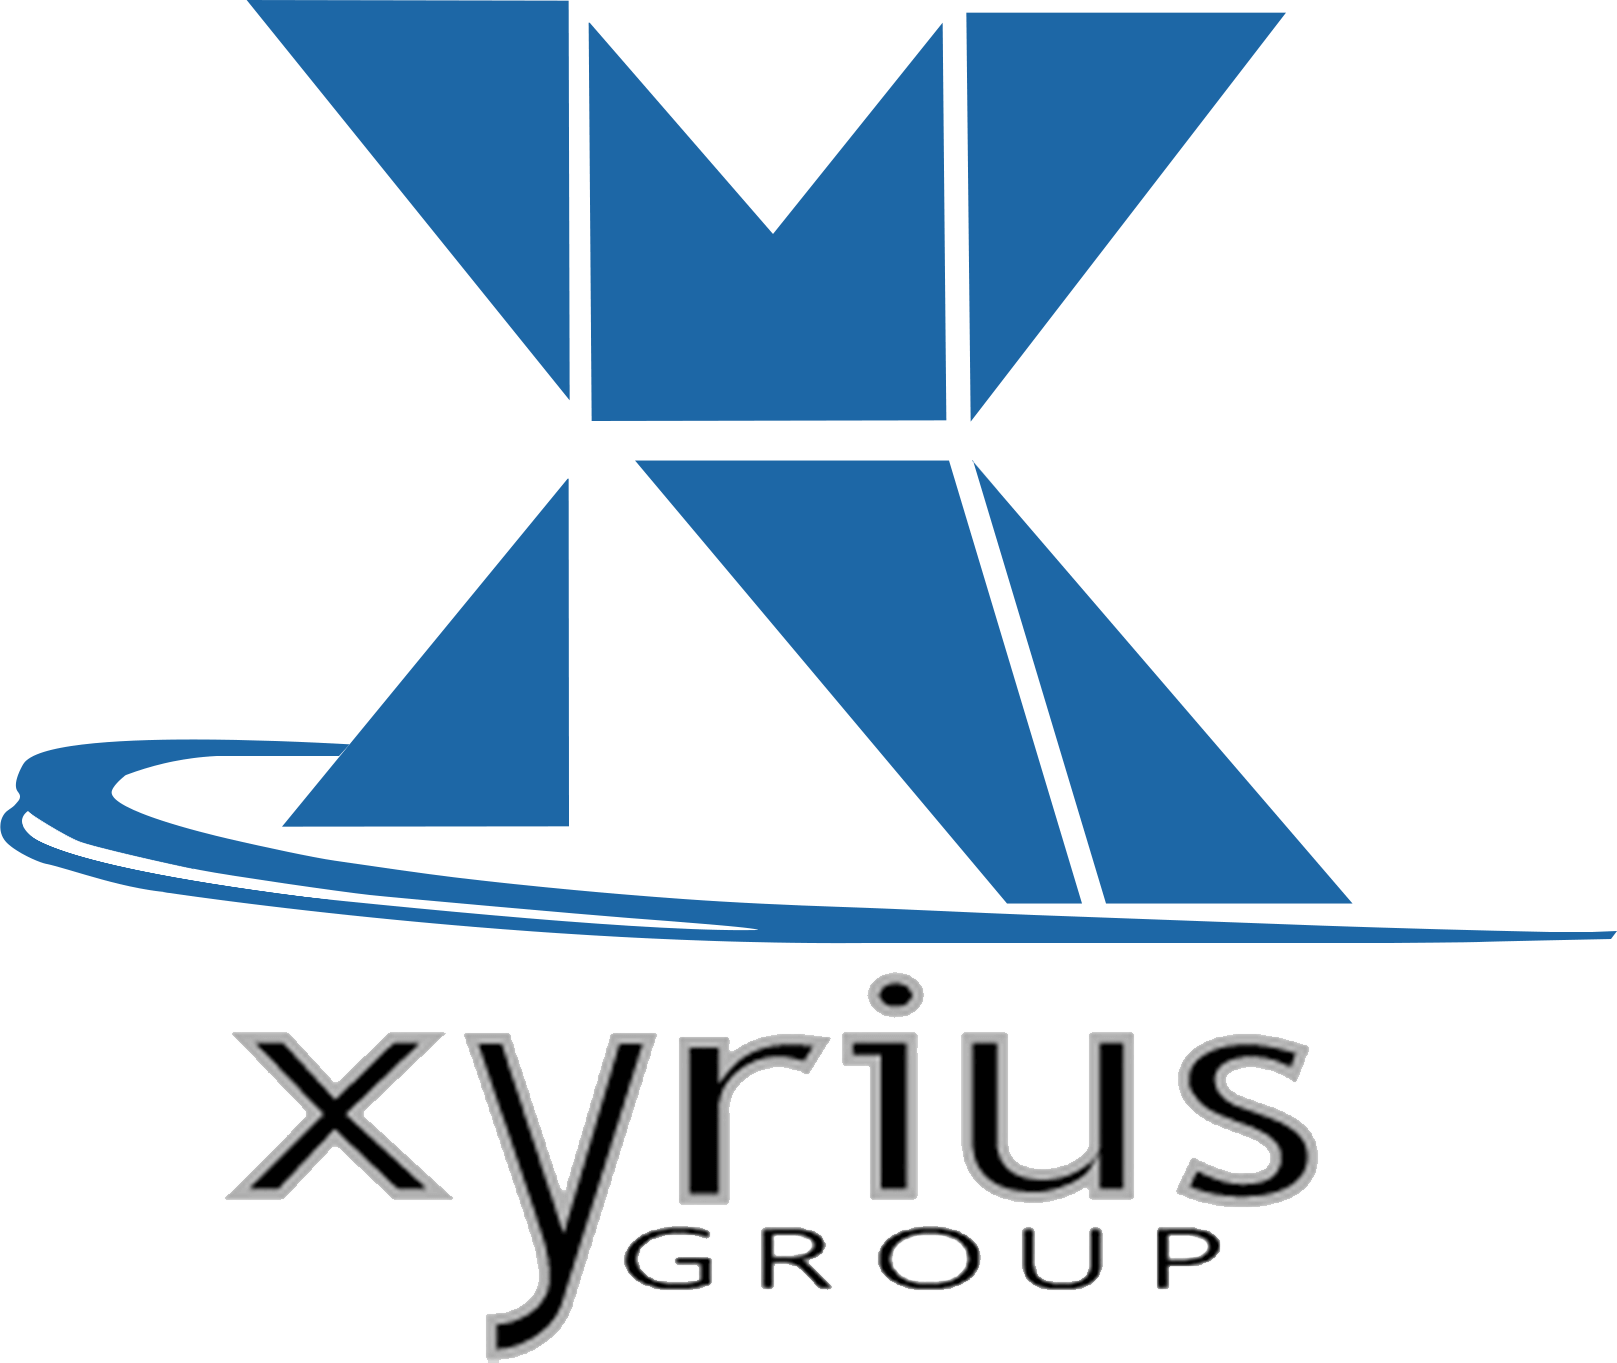 Xyrius Group